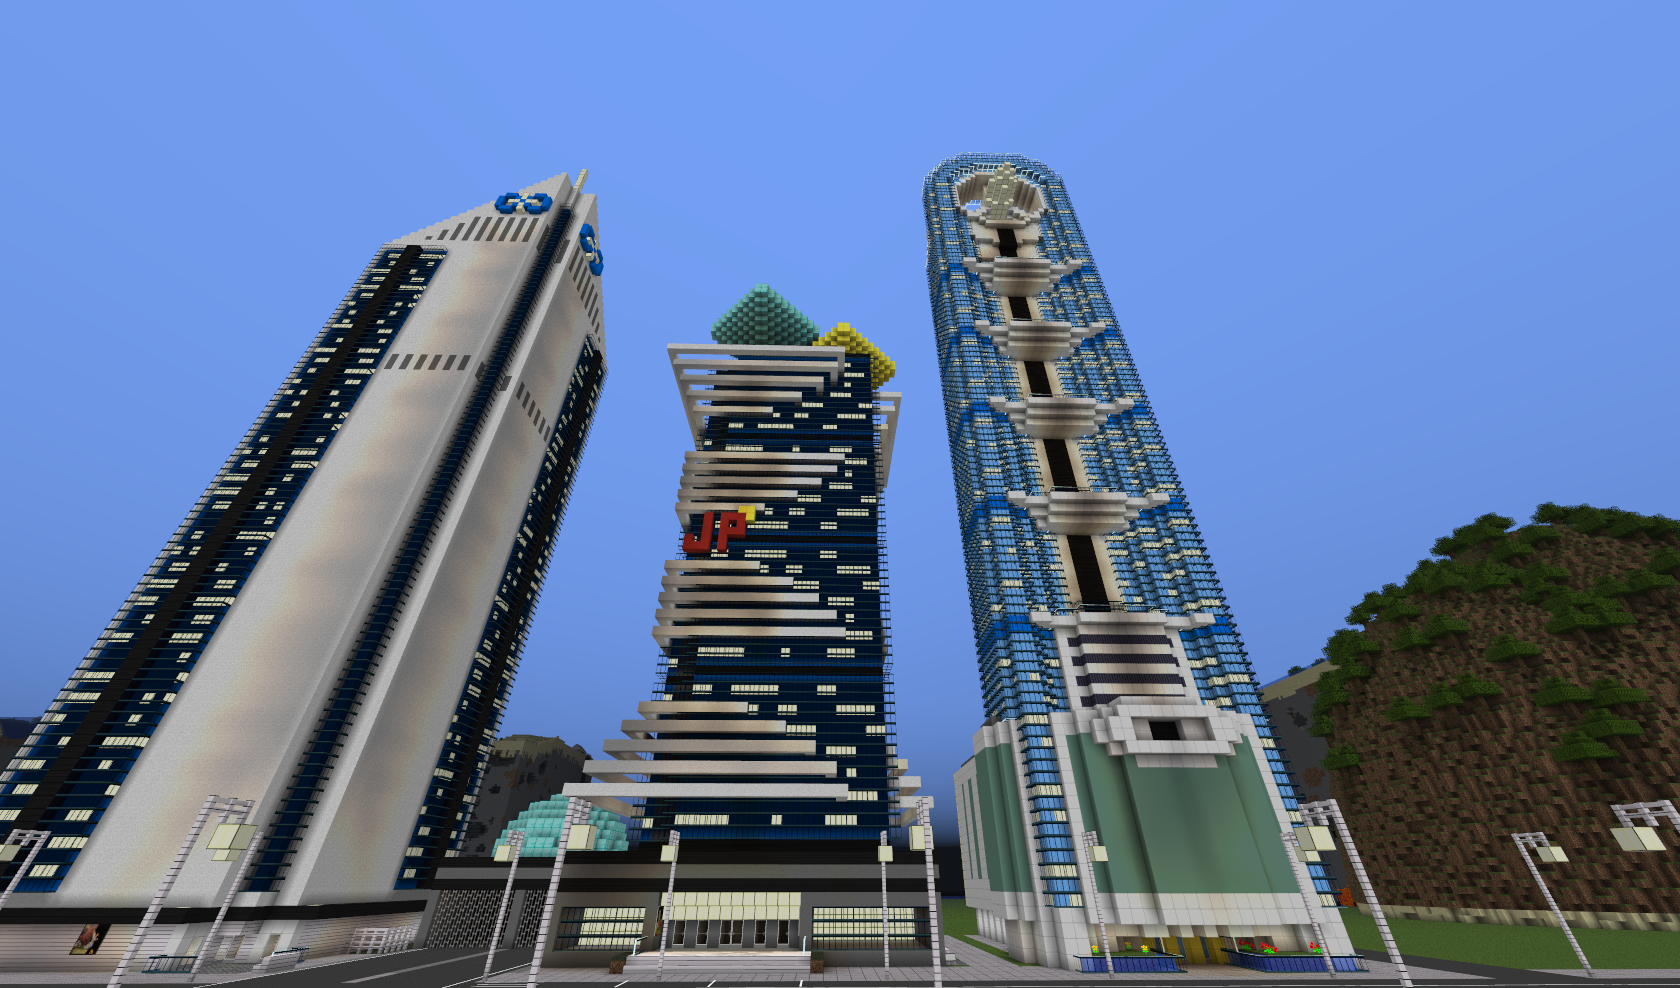 Map-ville-newcraft-vecter-city-minecraft-building